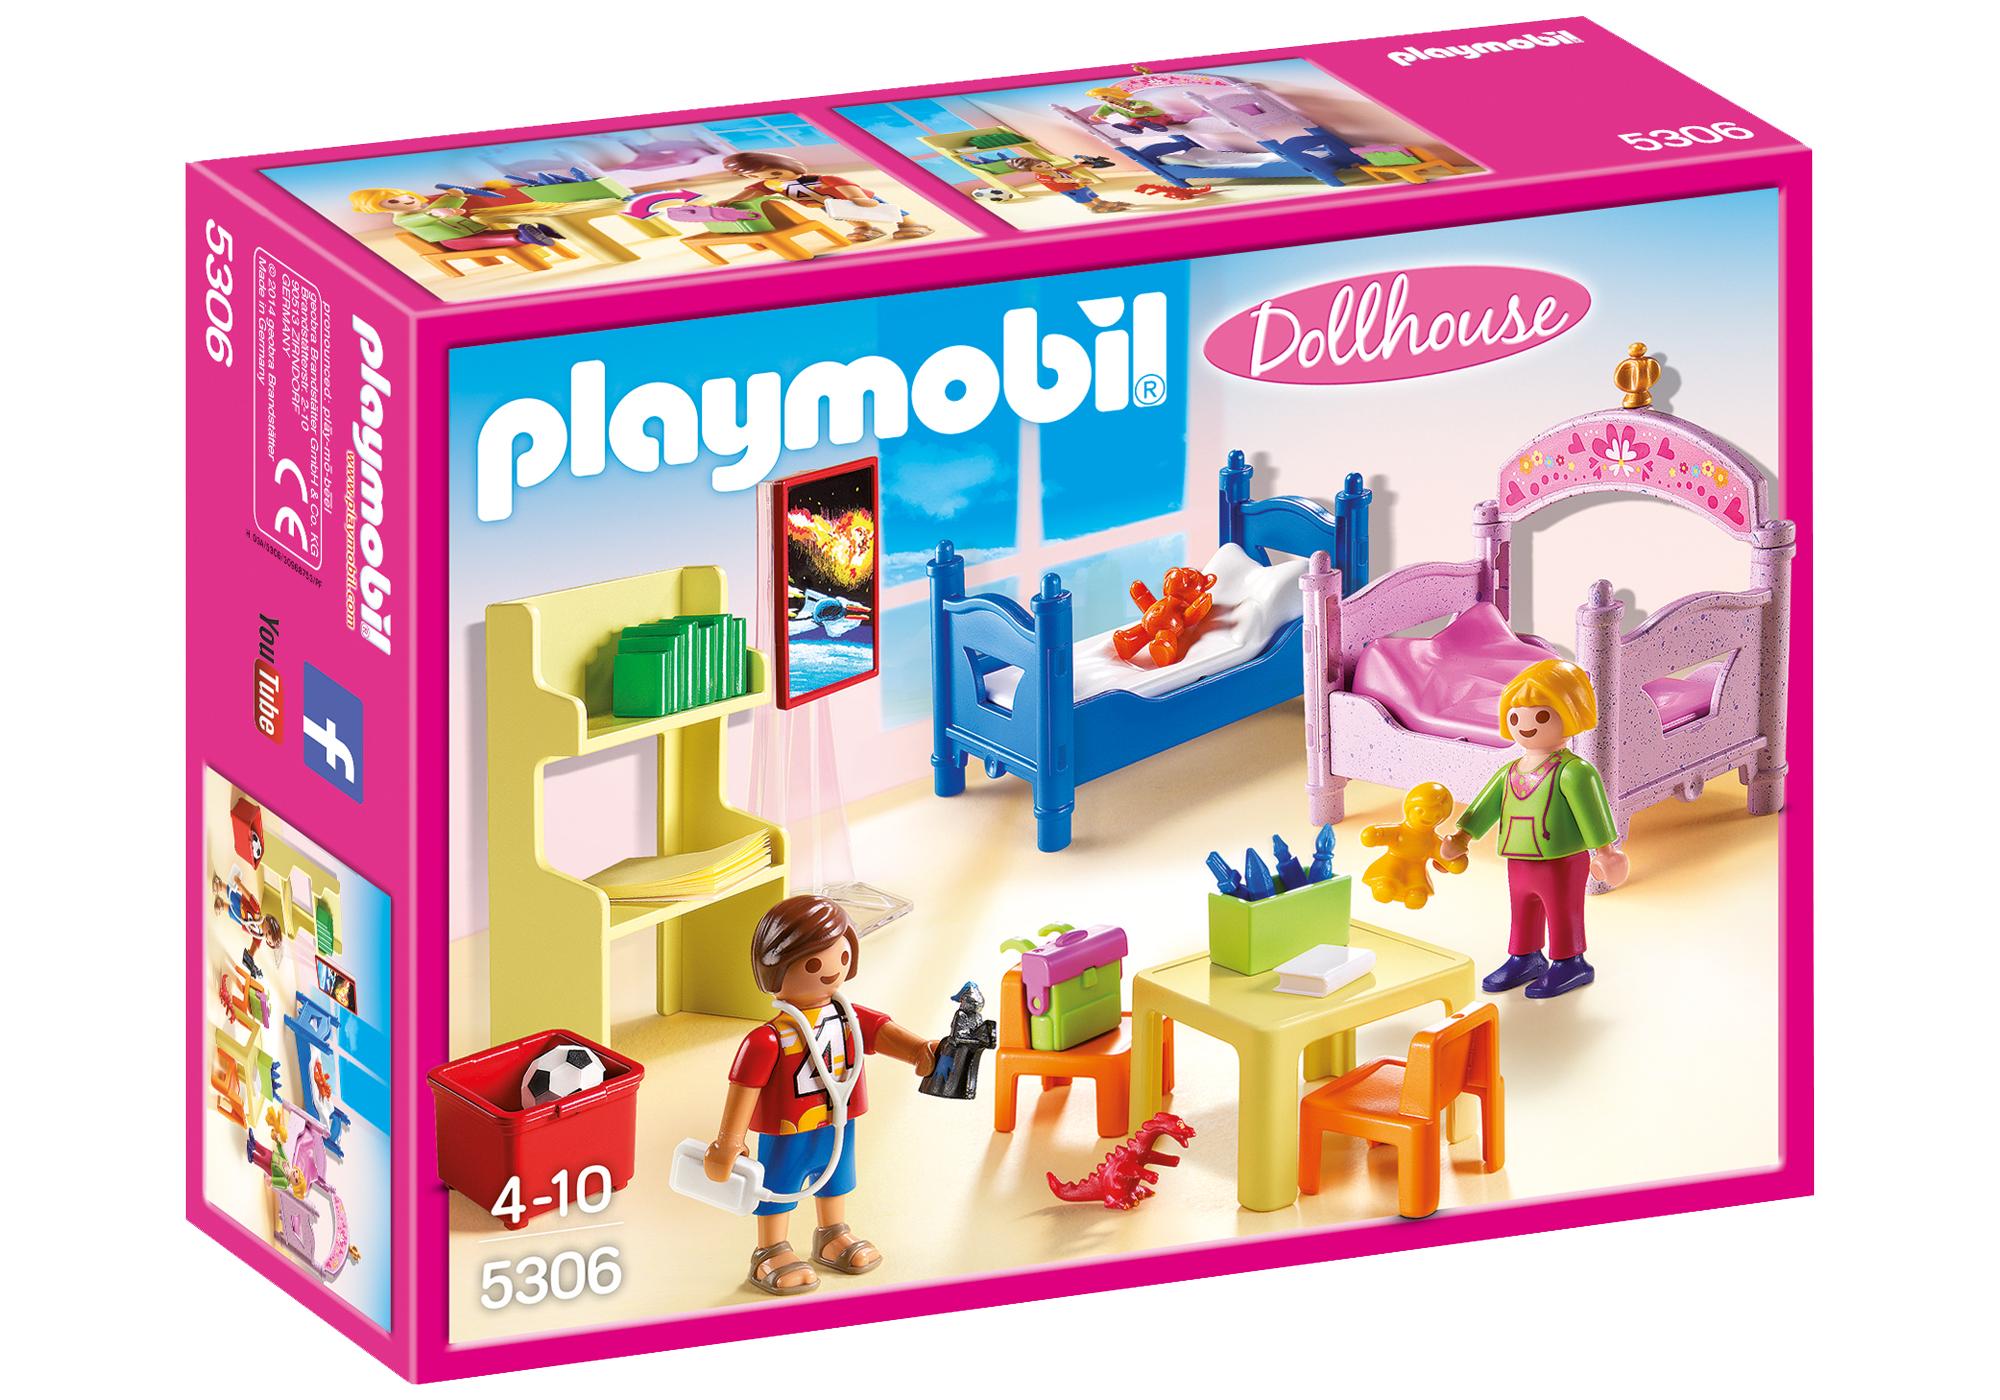 http://media.playmobil.com/i/playmobil/5306_product_box_front